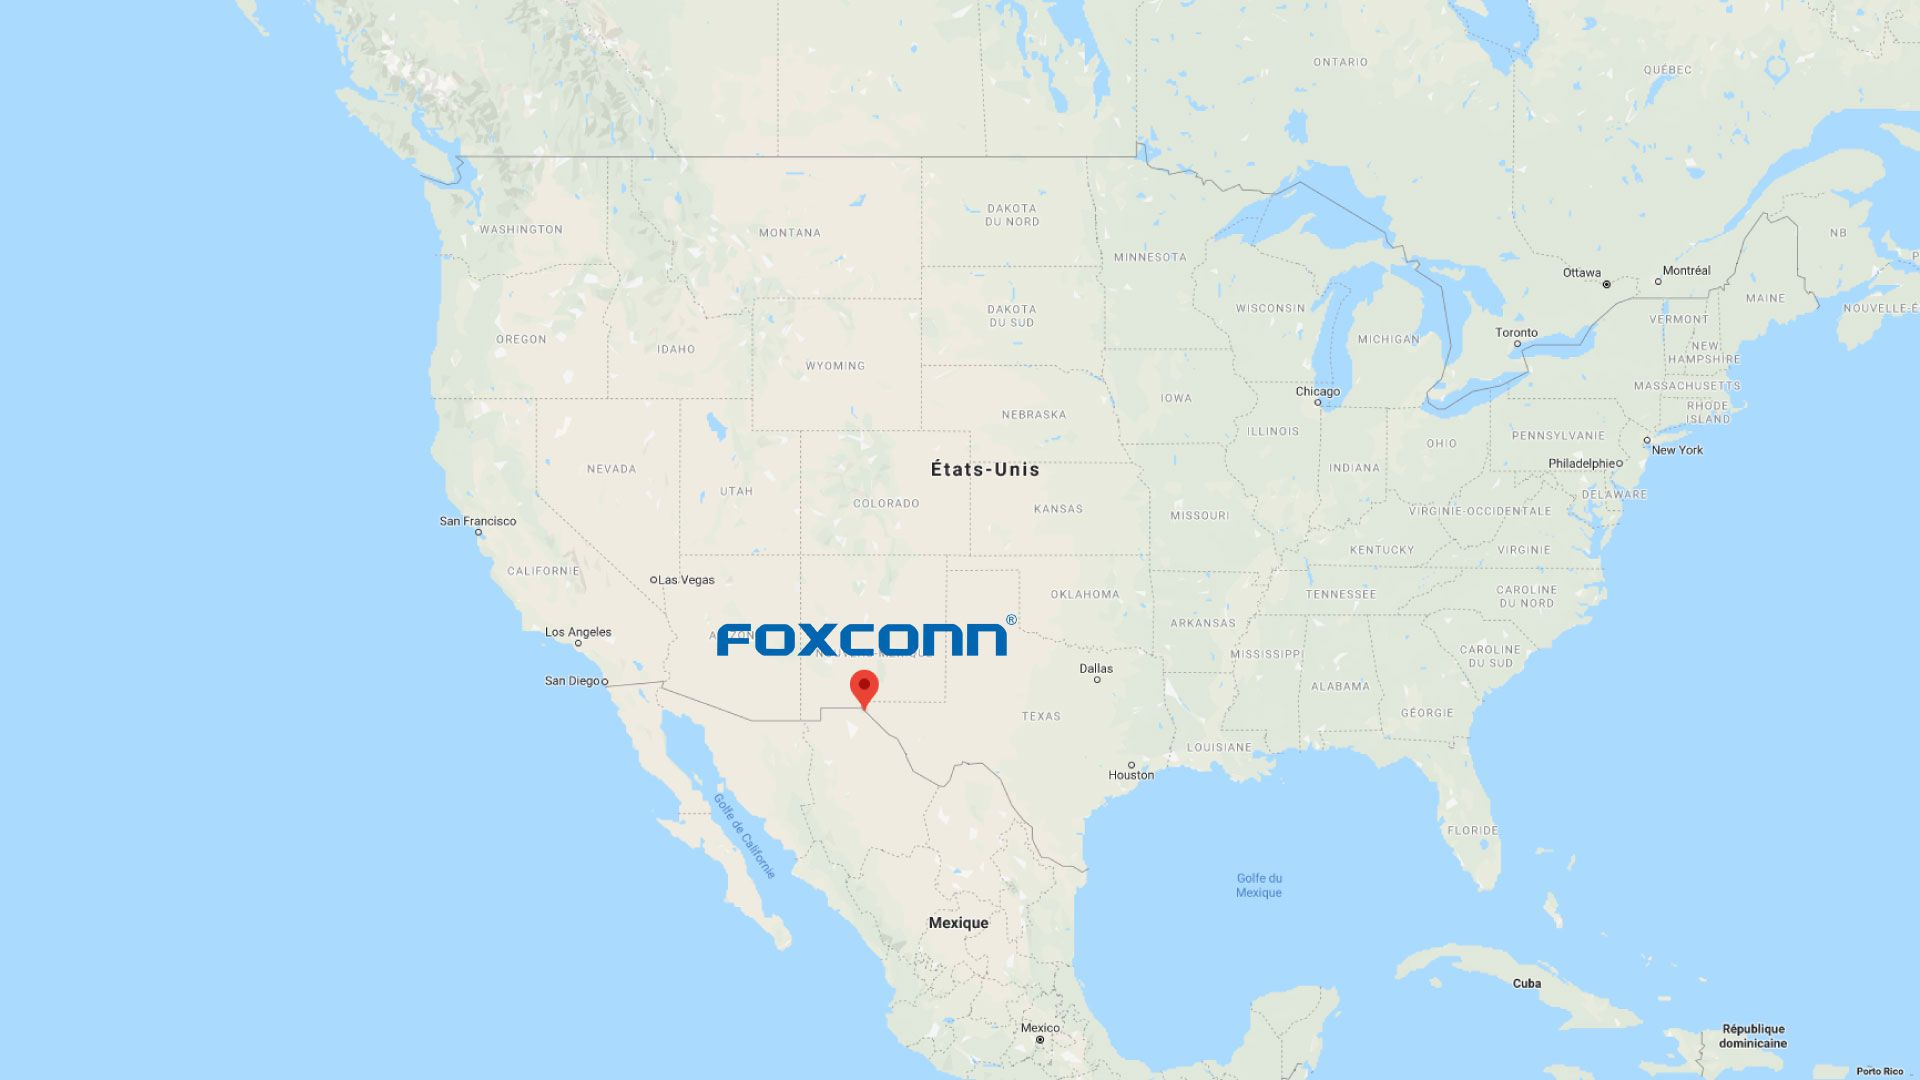 Carte positionnant les usines de Foxconn au Mexique